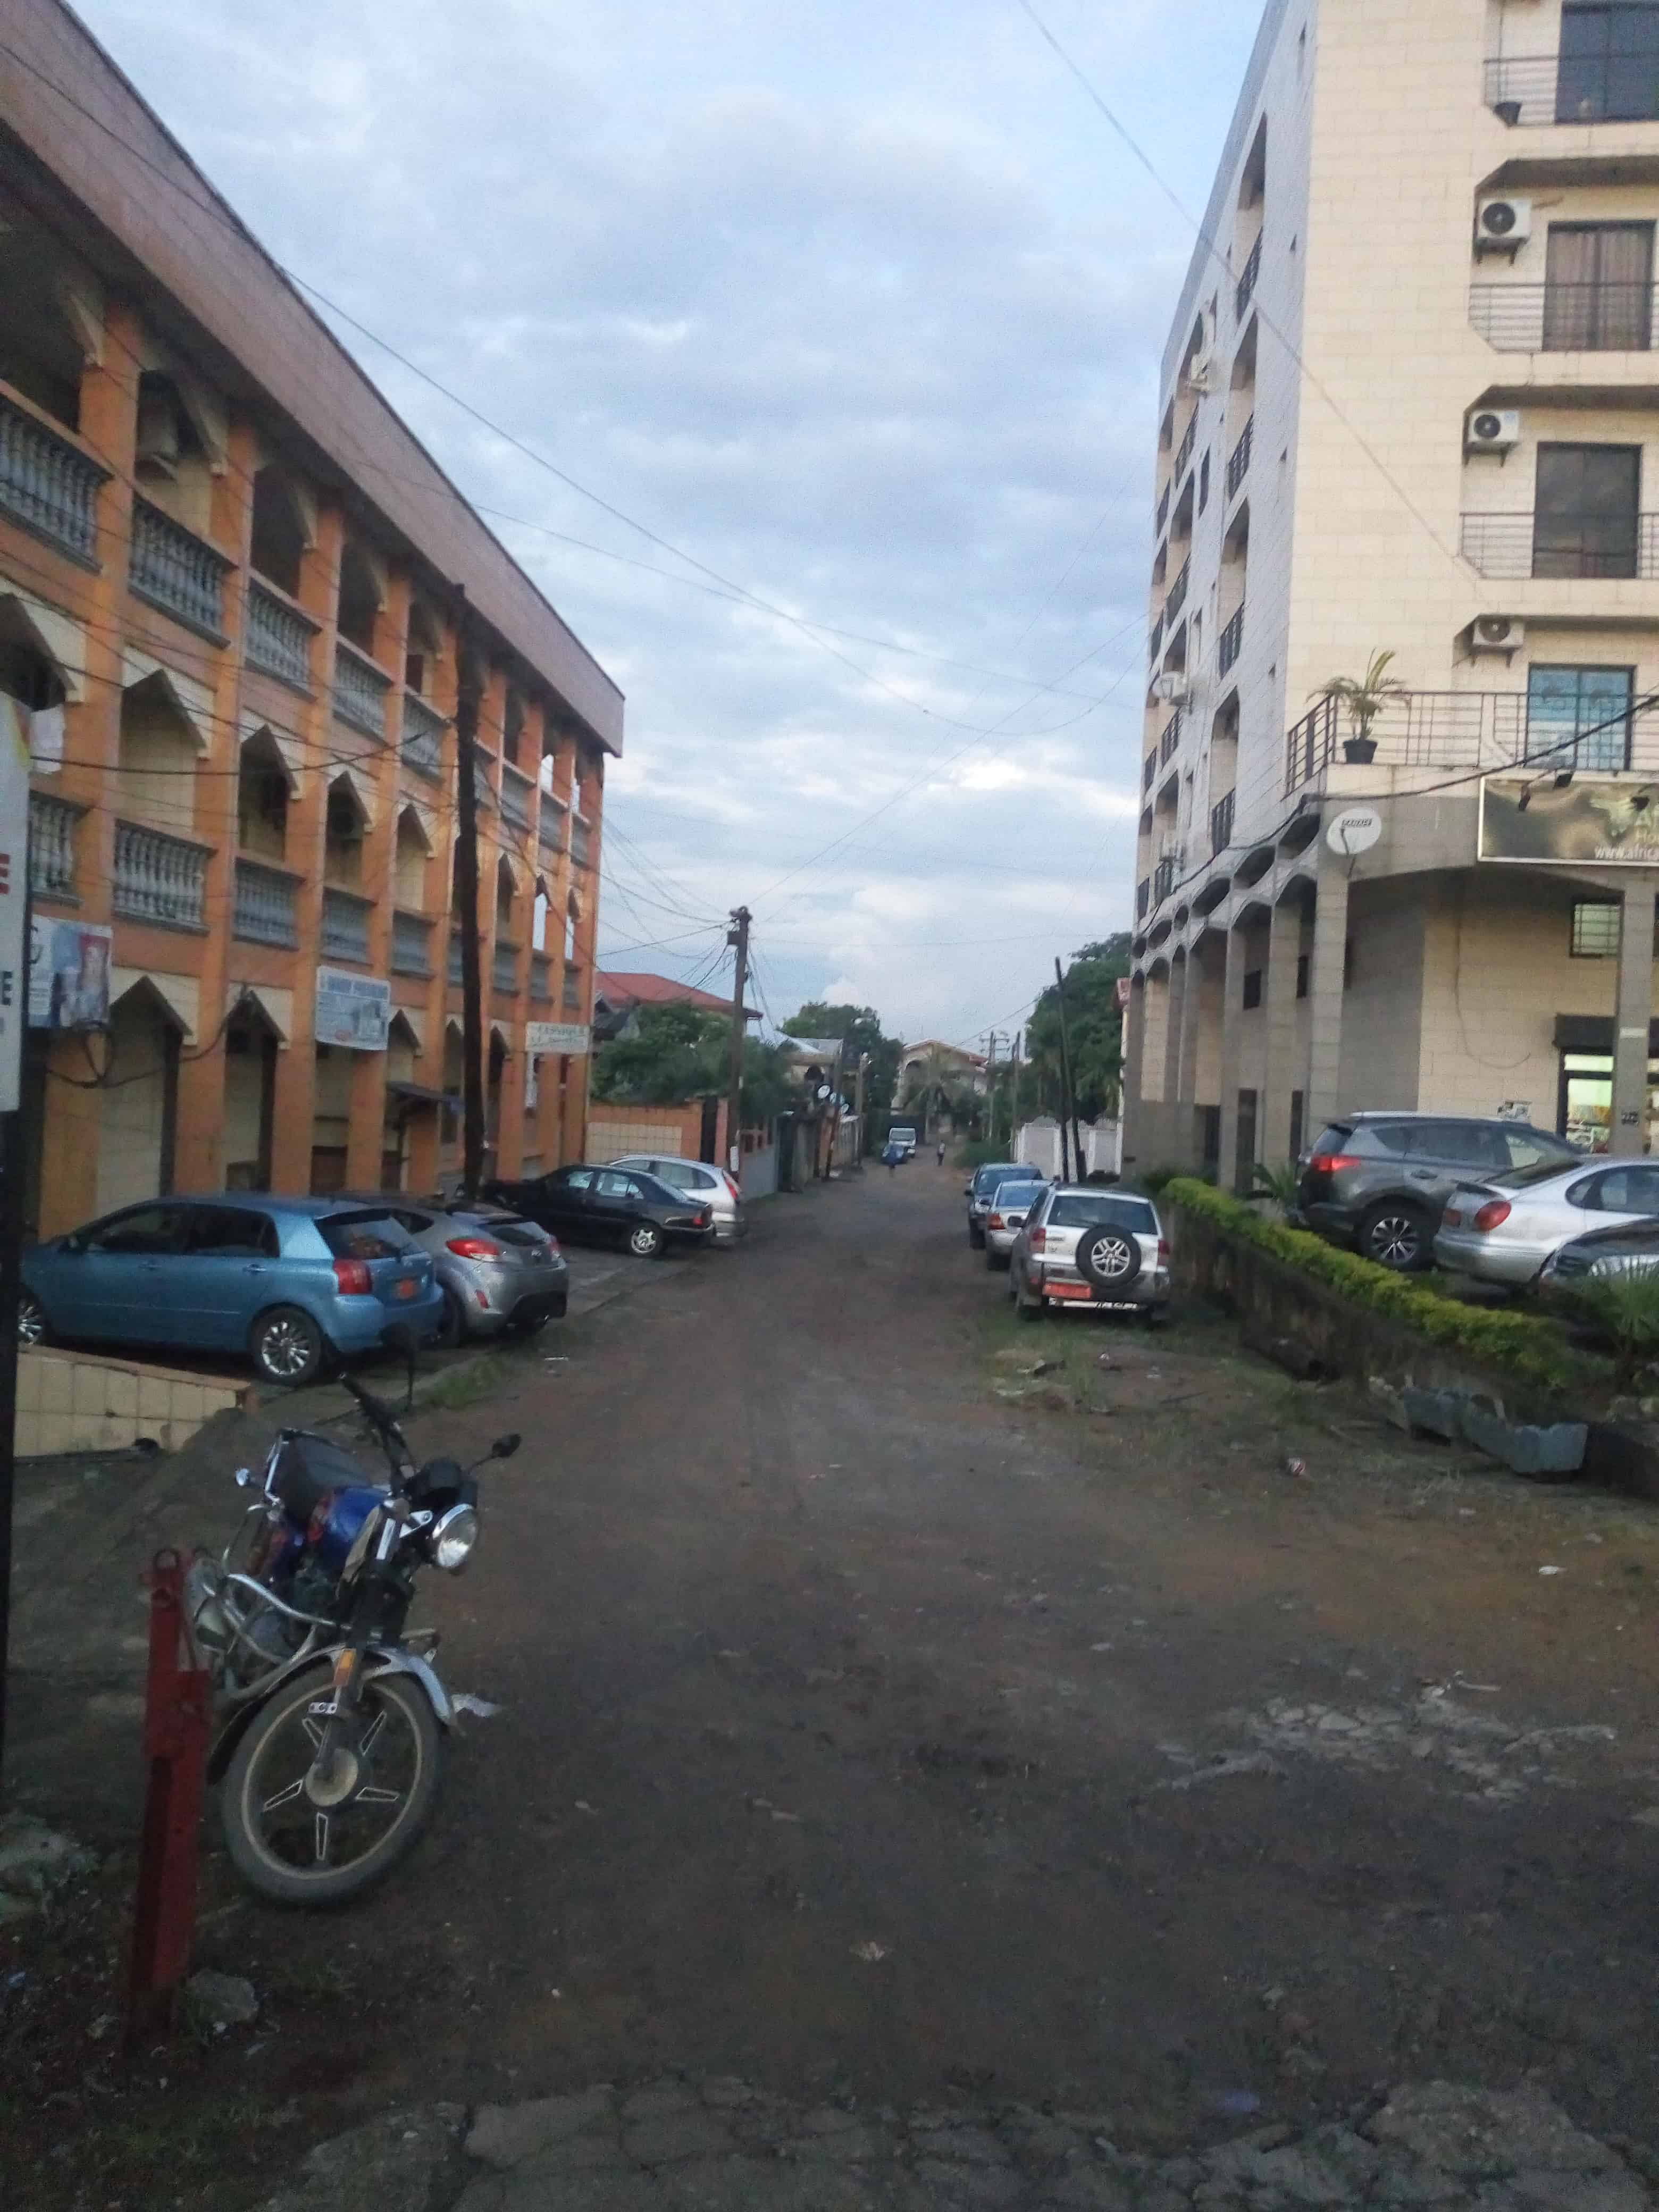 Land for sale at Douala, Makepe, Carrefour hapy sport - 560 m2 - 78 000 000 FCFA